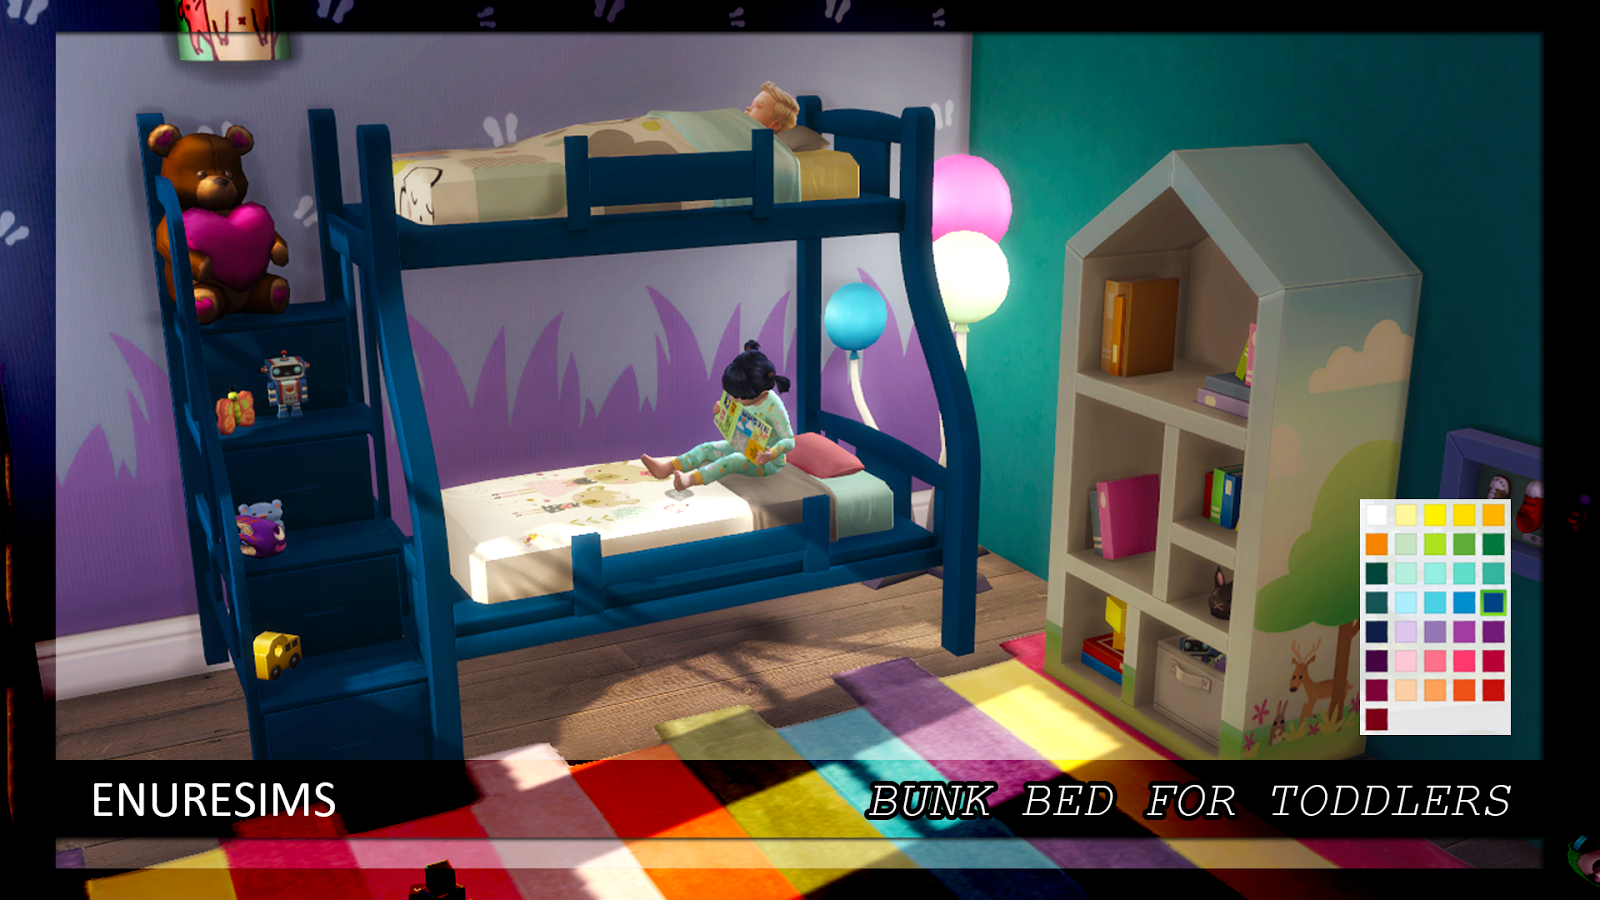 Bunk Bed For Toddlers Enure Sims